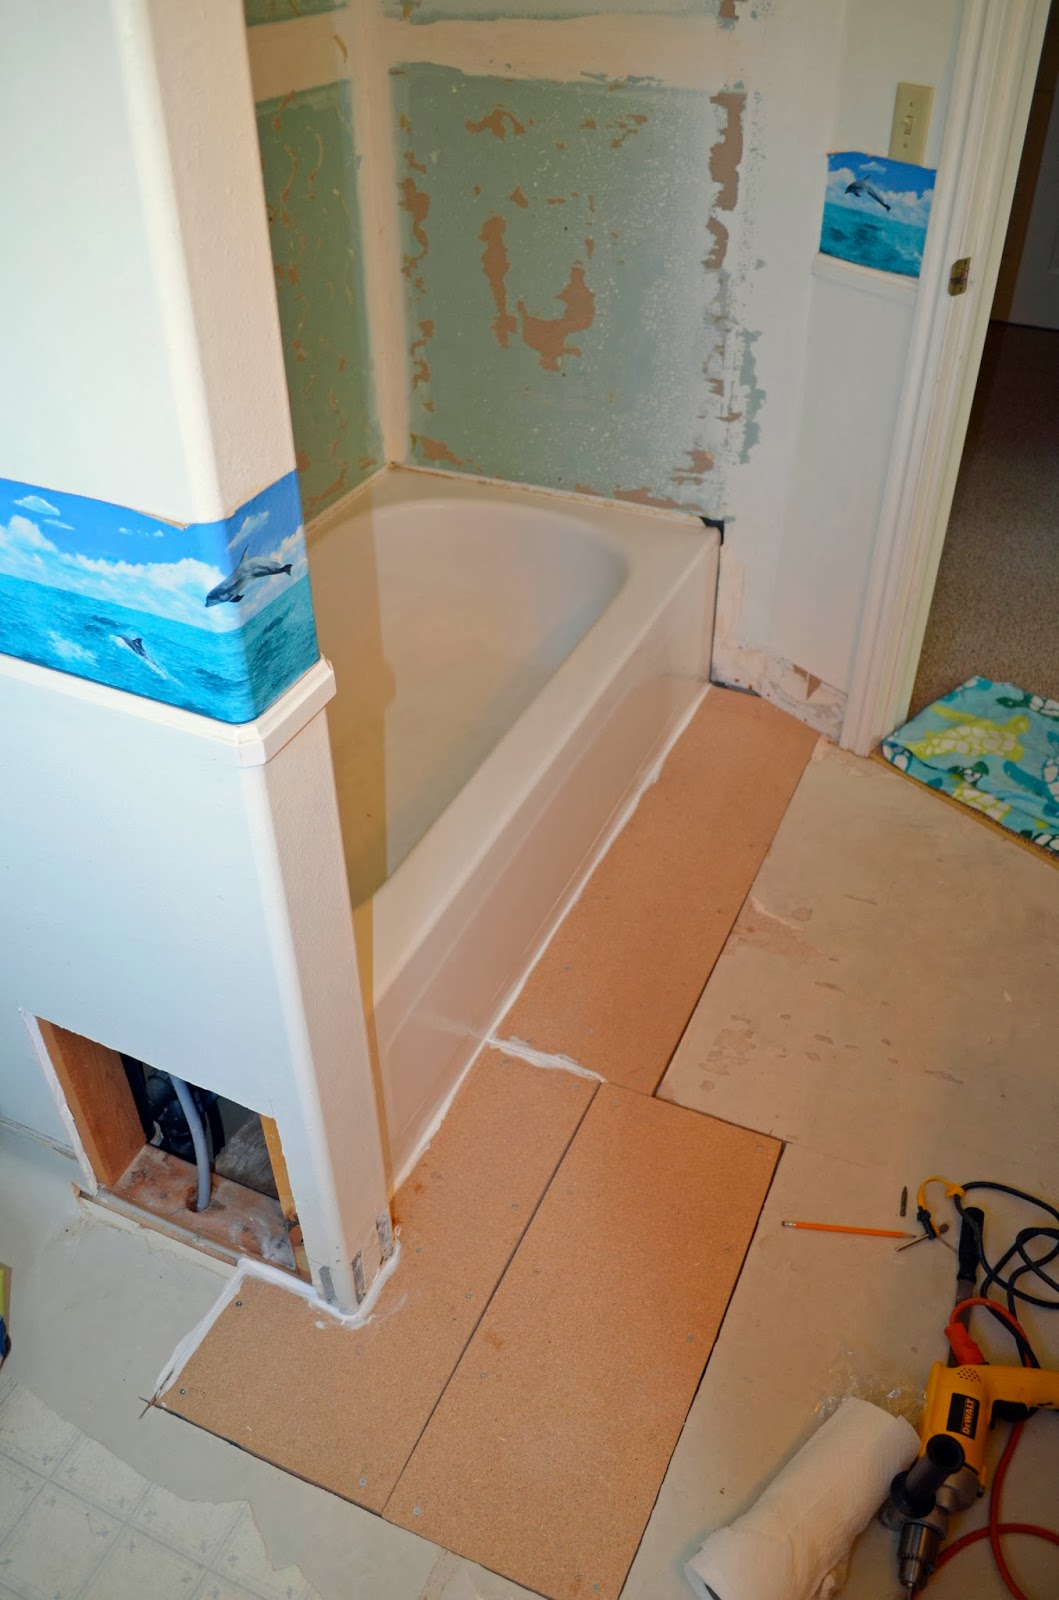 One Thing Leads To Another Mostly DIY Bathroom Repair And Remodel - How to repair bathroom floor